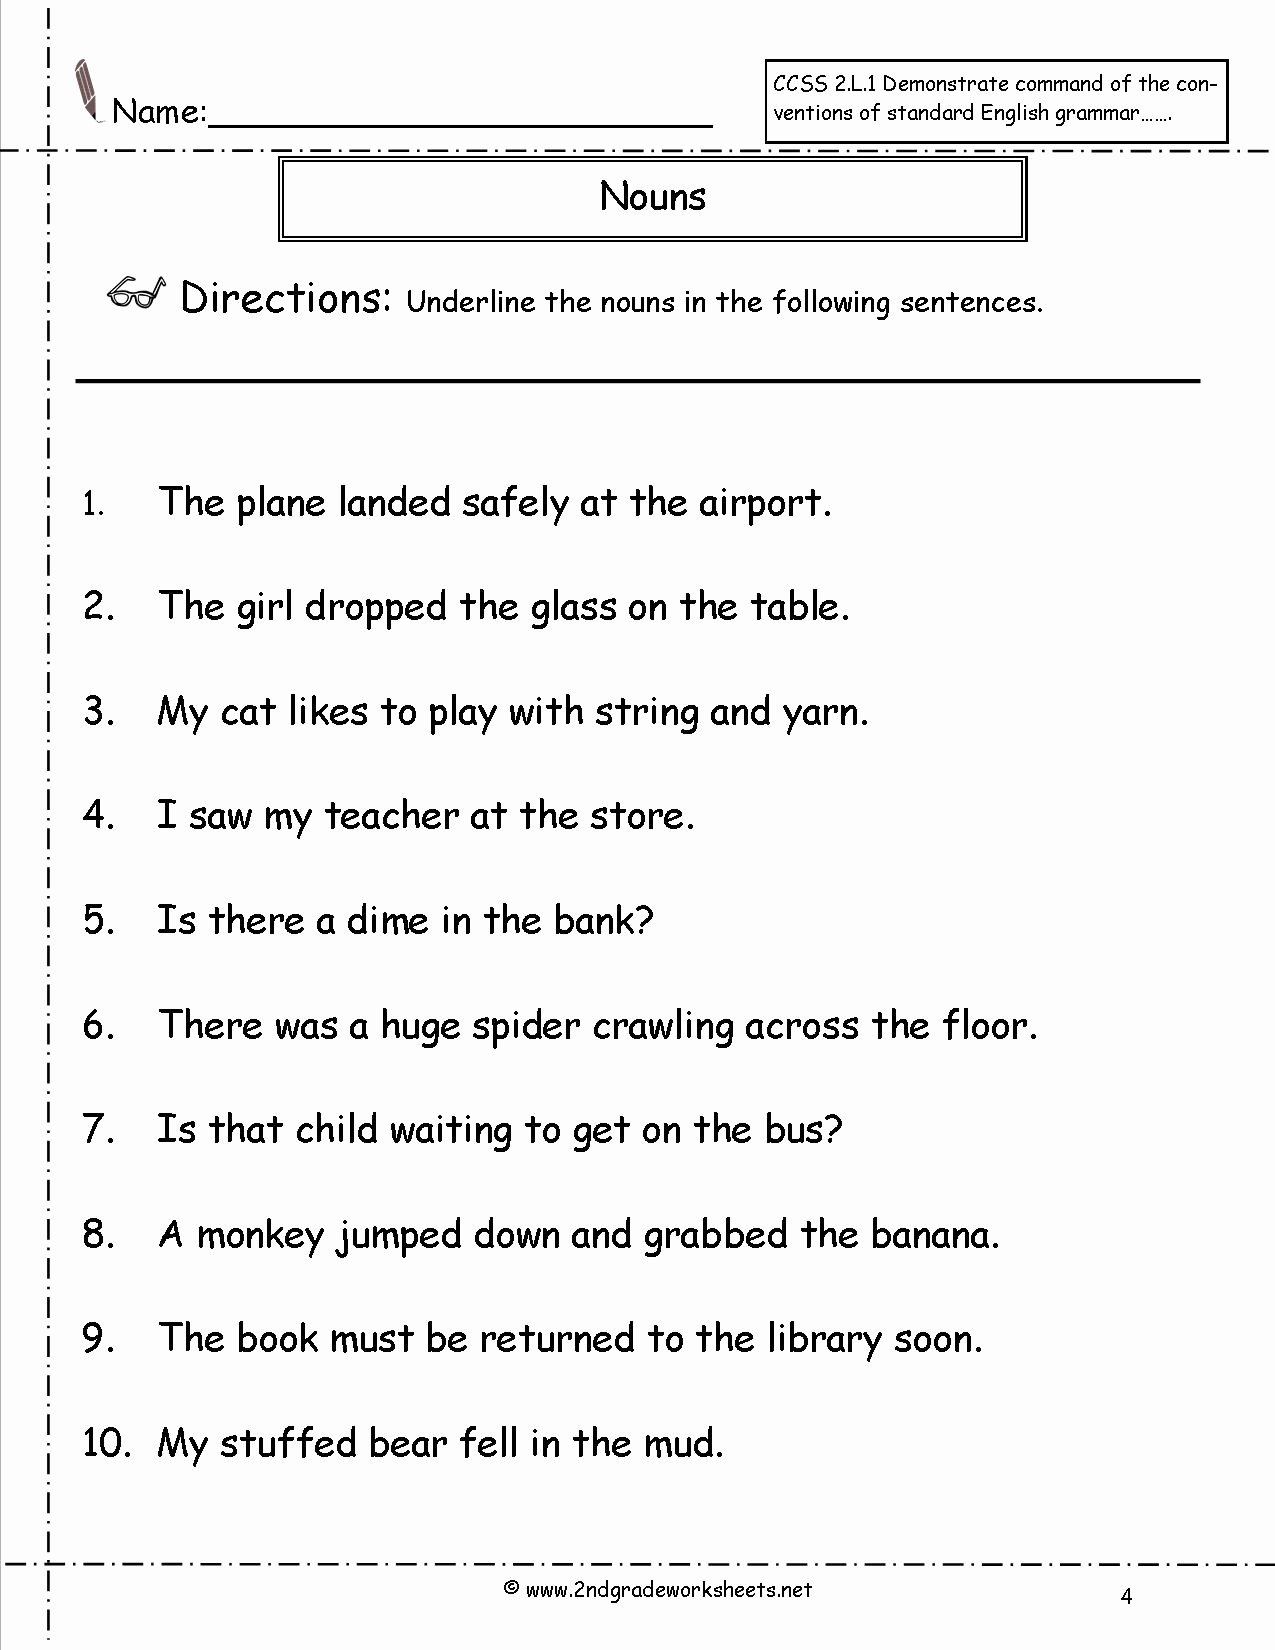 Pronoun Worksheets for 2nd Grade Printable Pronoun Worksheets Free Elementary